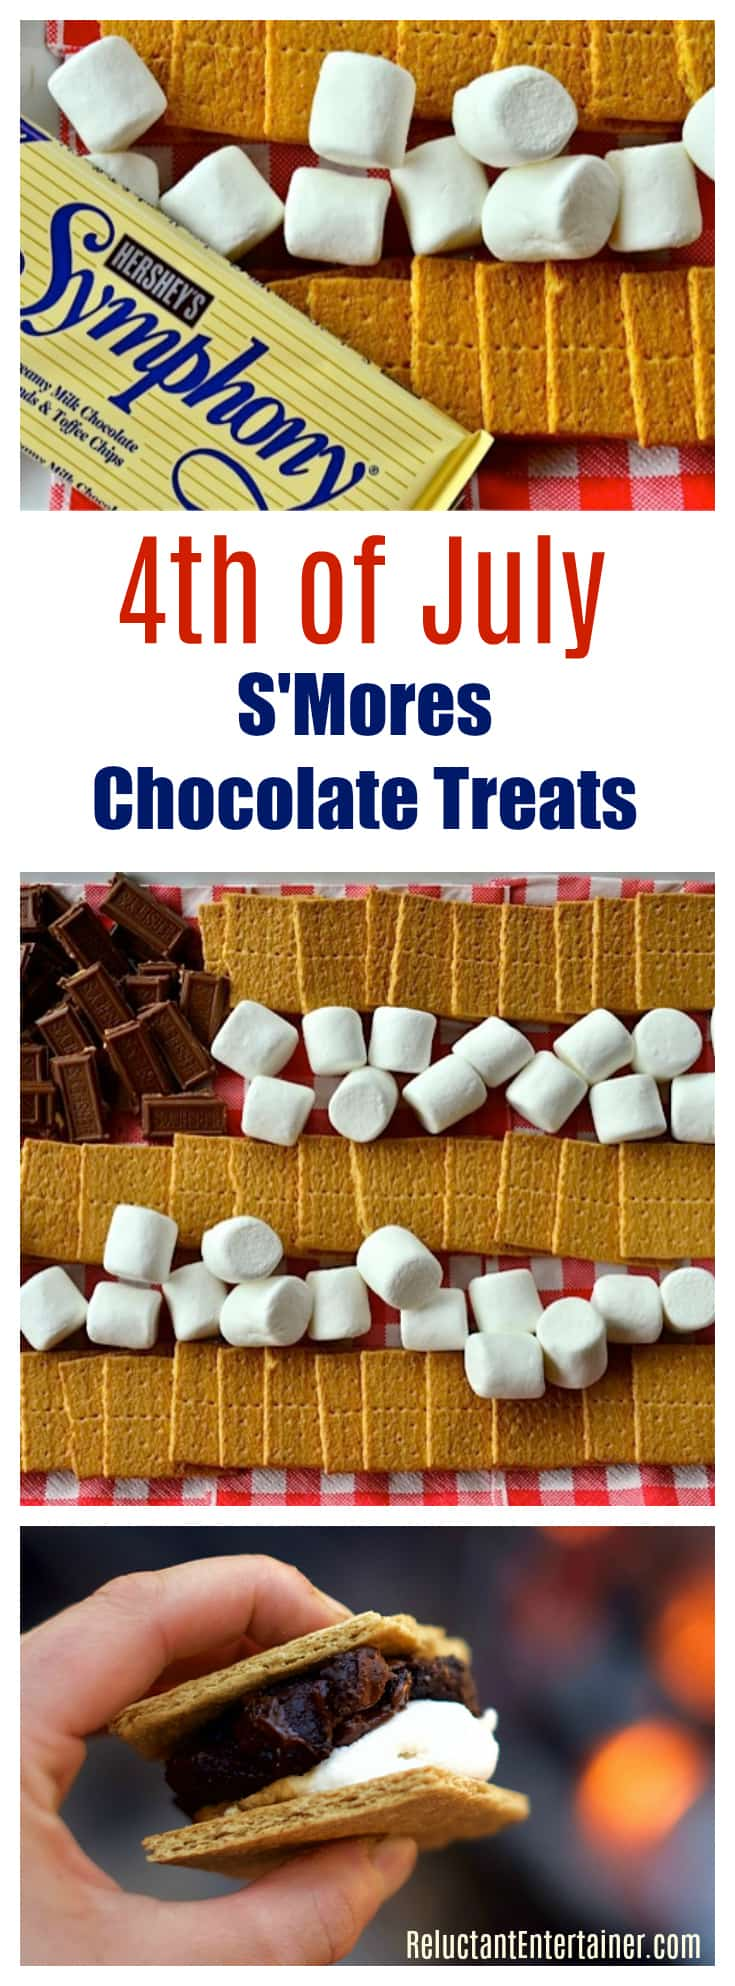 4th of July S'Mores Chocolate Treats